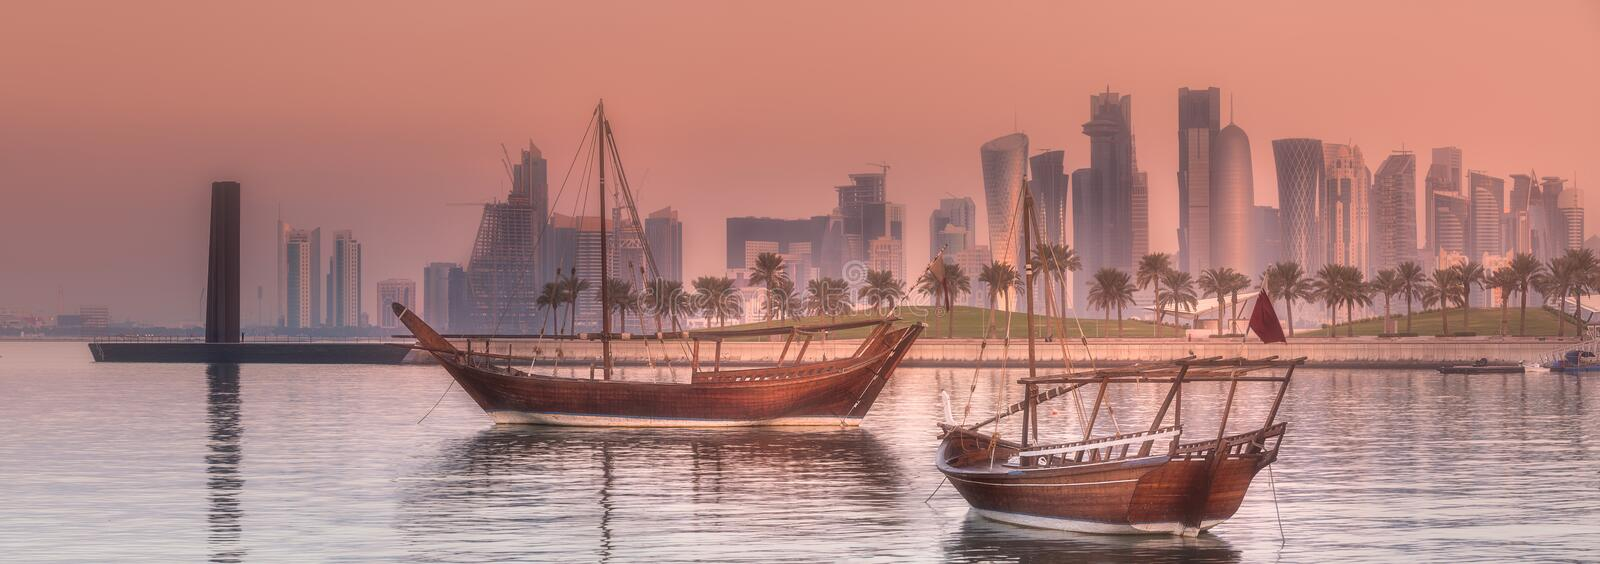 Traditional Arabic Dhow boats in Doha harbour, Qatar stock photos